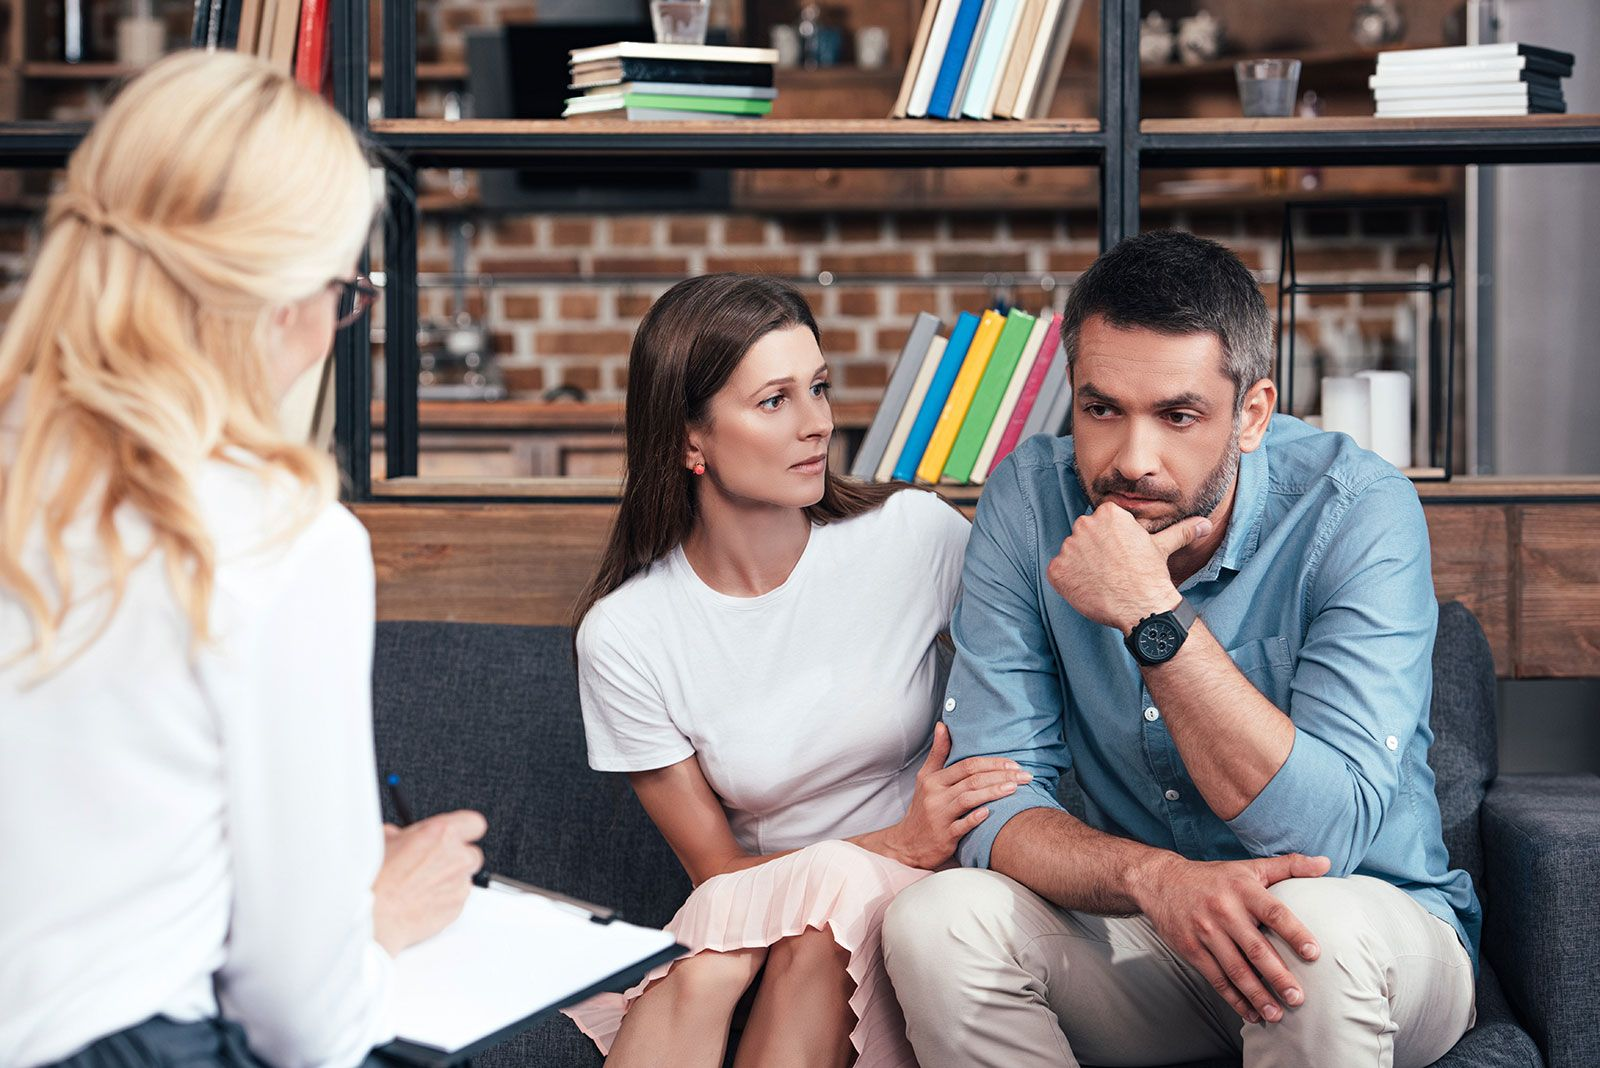 Dbt For Managing Interpersonal Relationships